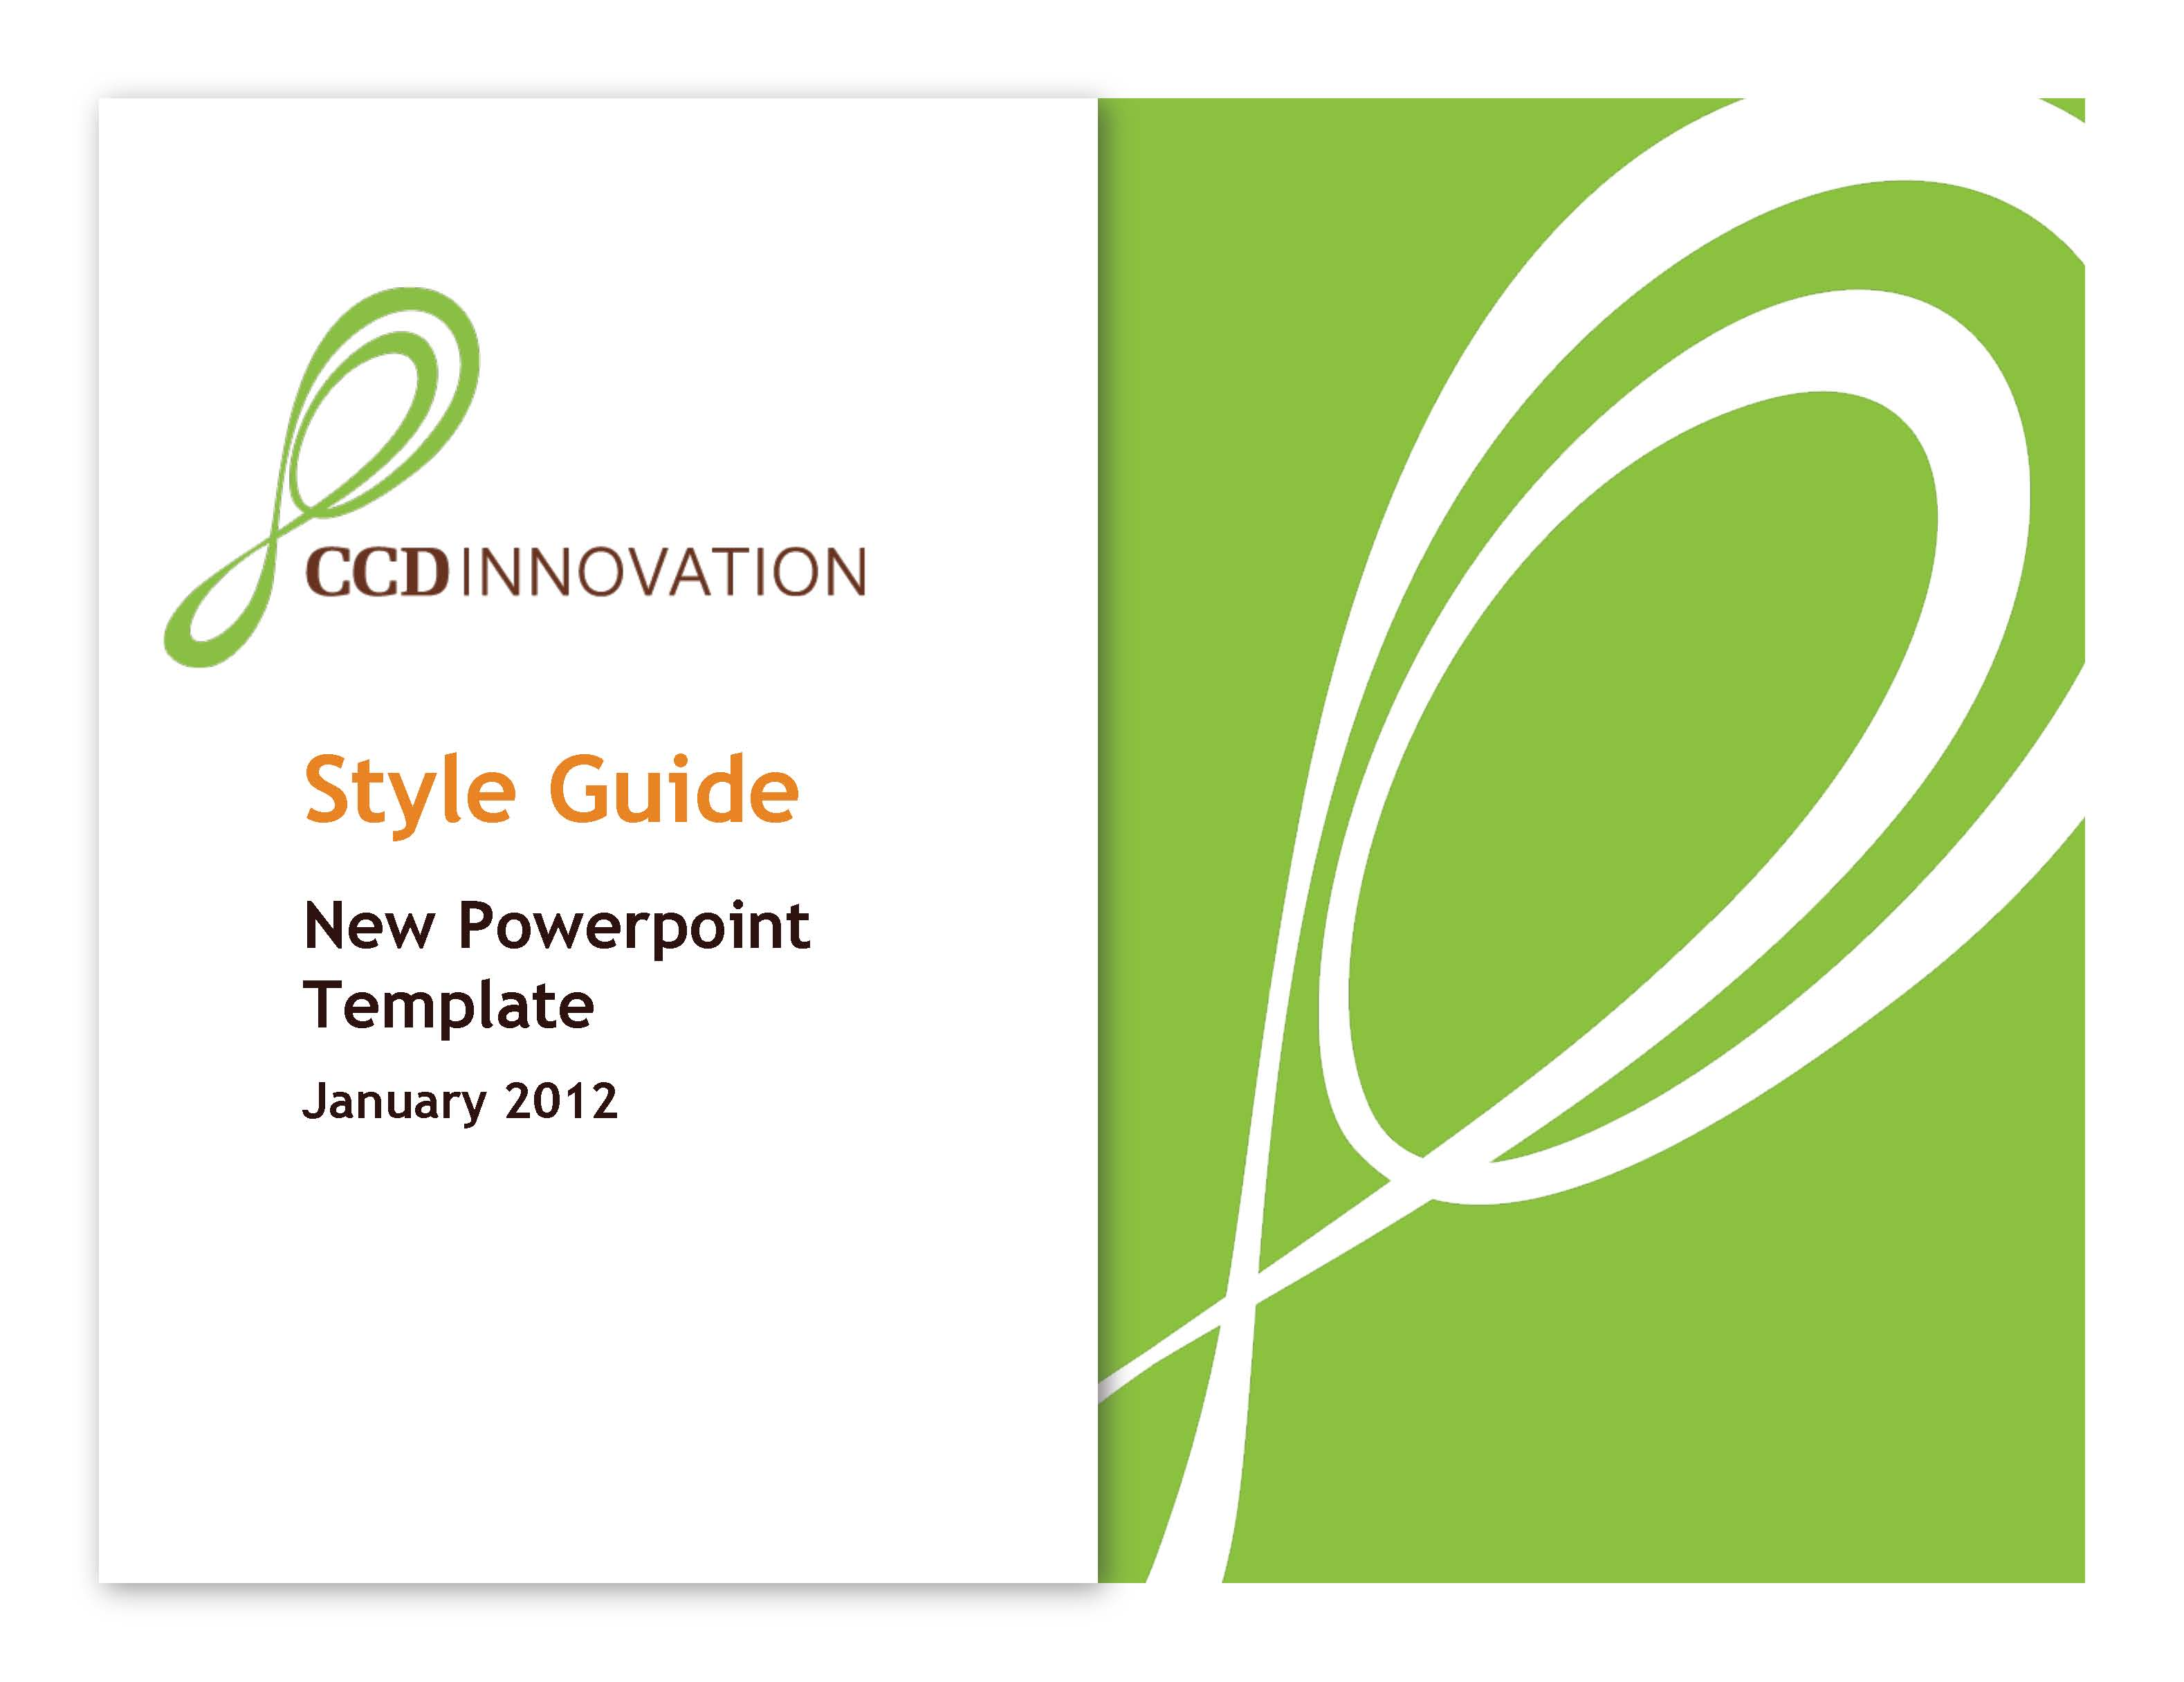 Ccd innovation powerpoint template development designclaire ccd innovation powerpoint template development toneelgroepblik Image collections